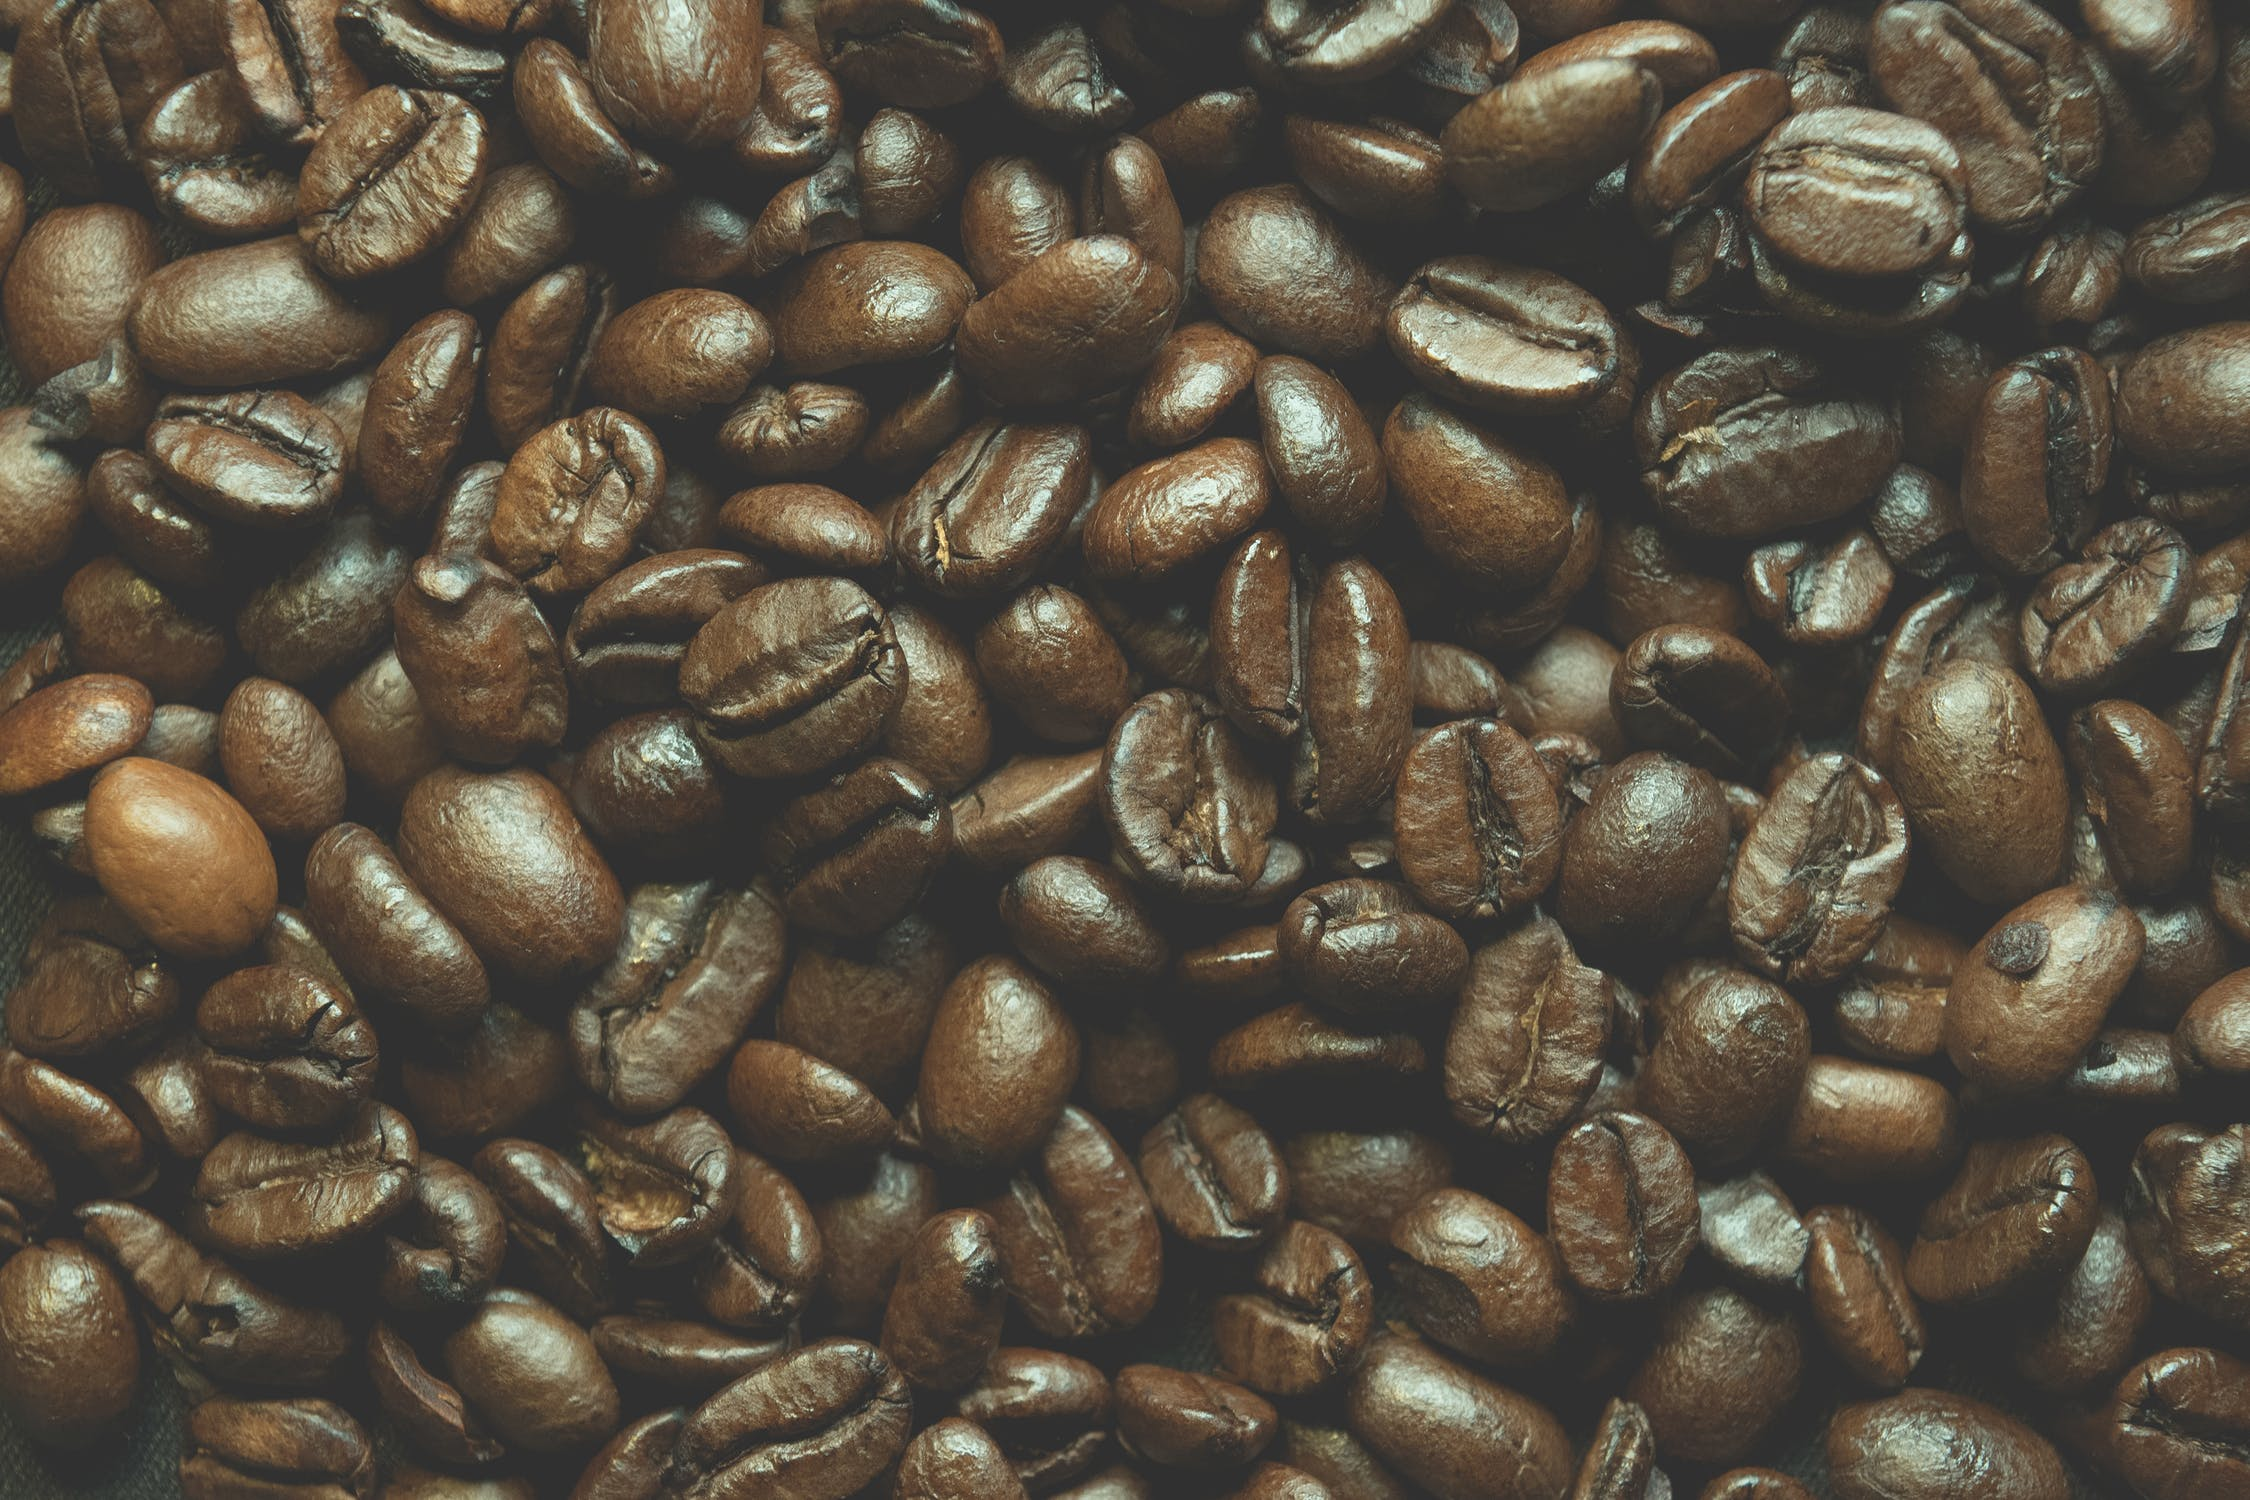 Fresh coffee beans fill the screen.